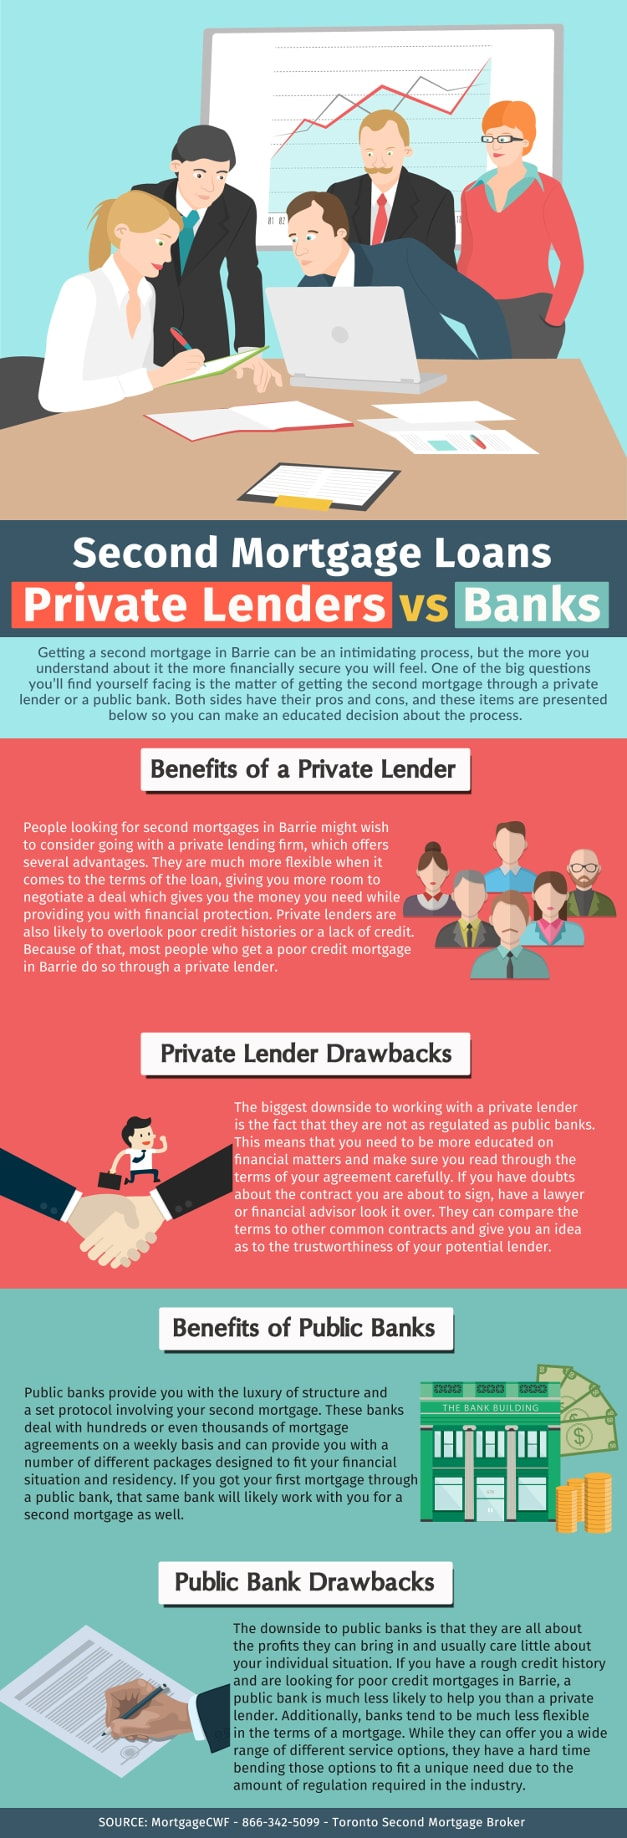 Second Mortgage Loans: Private Lenders vs Banks - Infographic